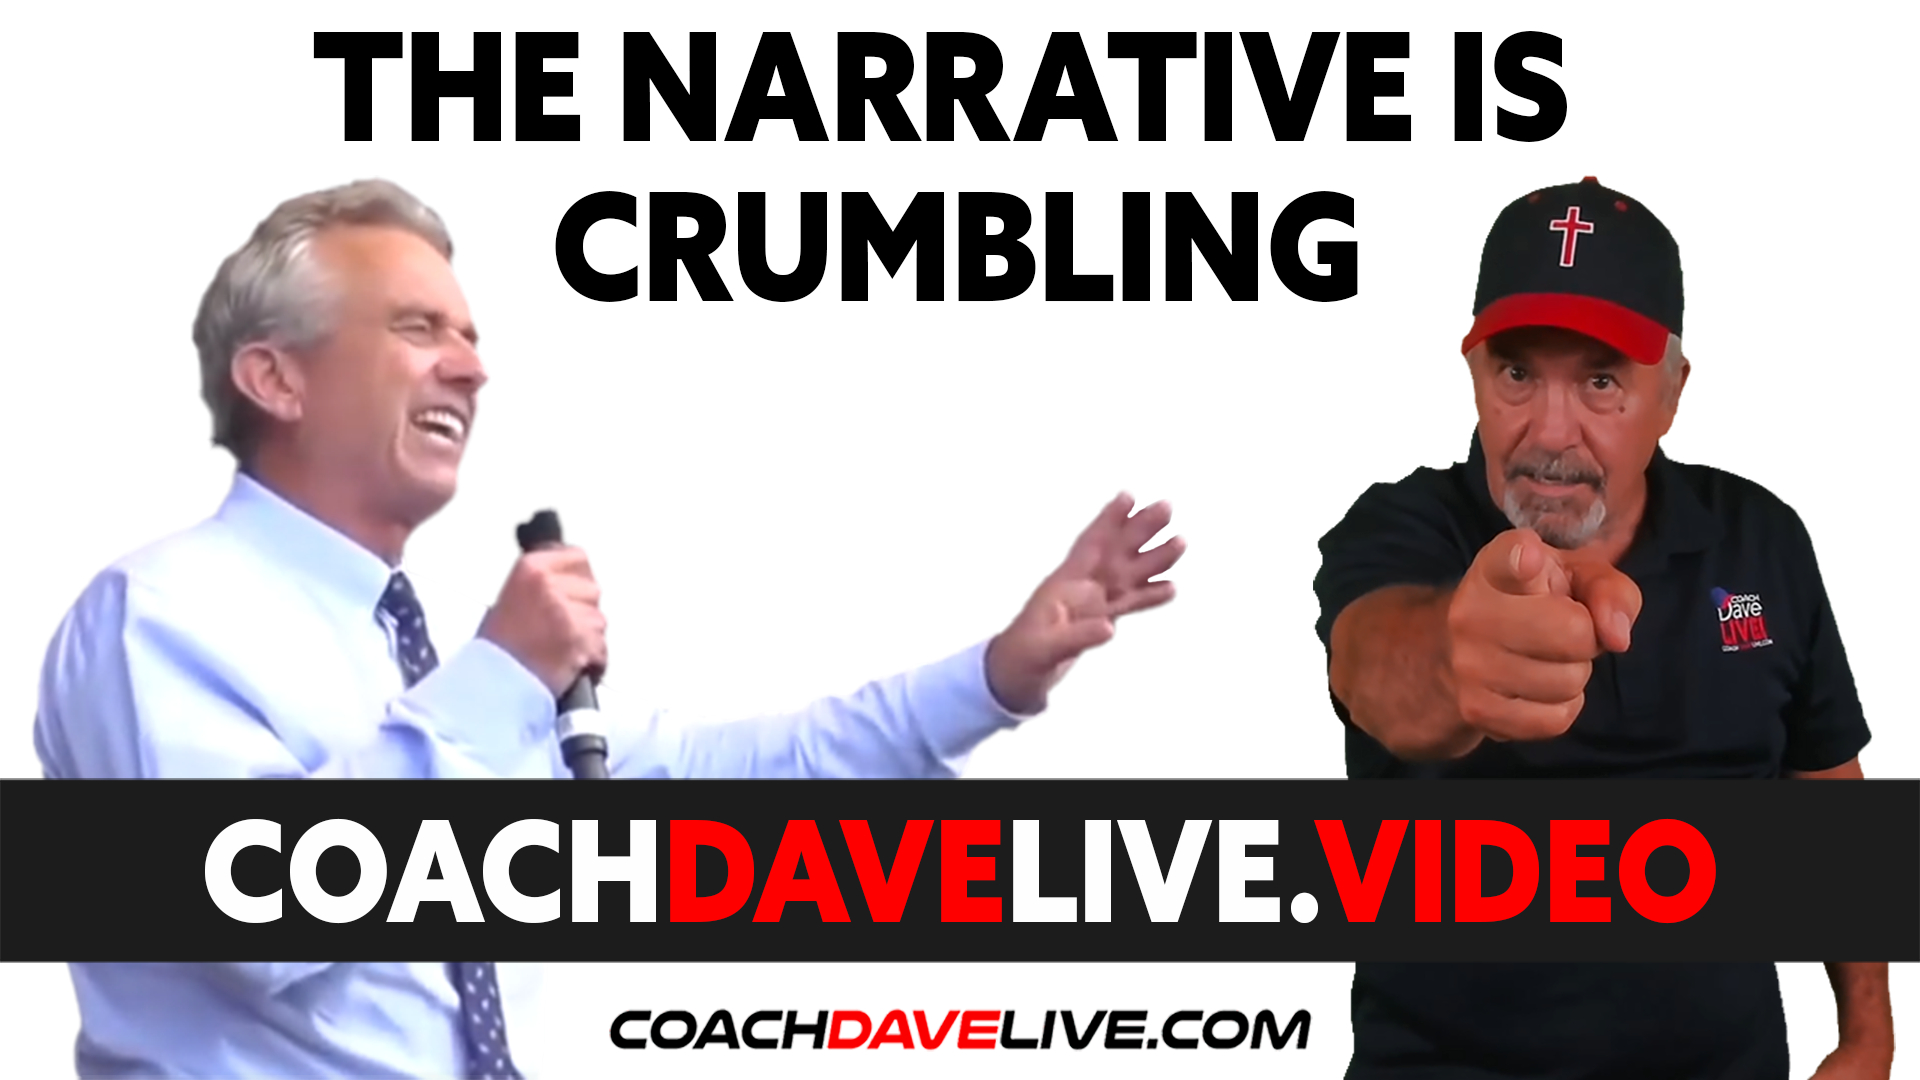 Coach Dave LIVE   9-13-2021   THE NARRATIVE IS CRUMBLING